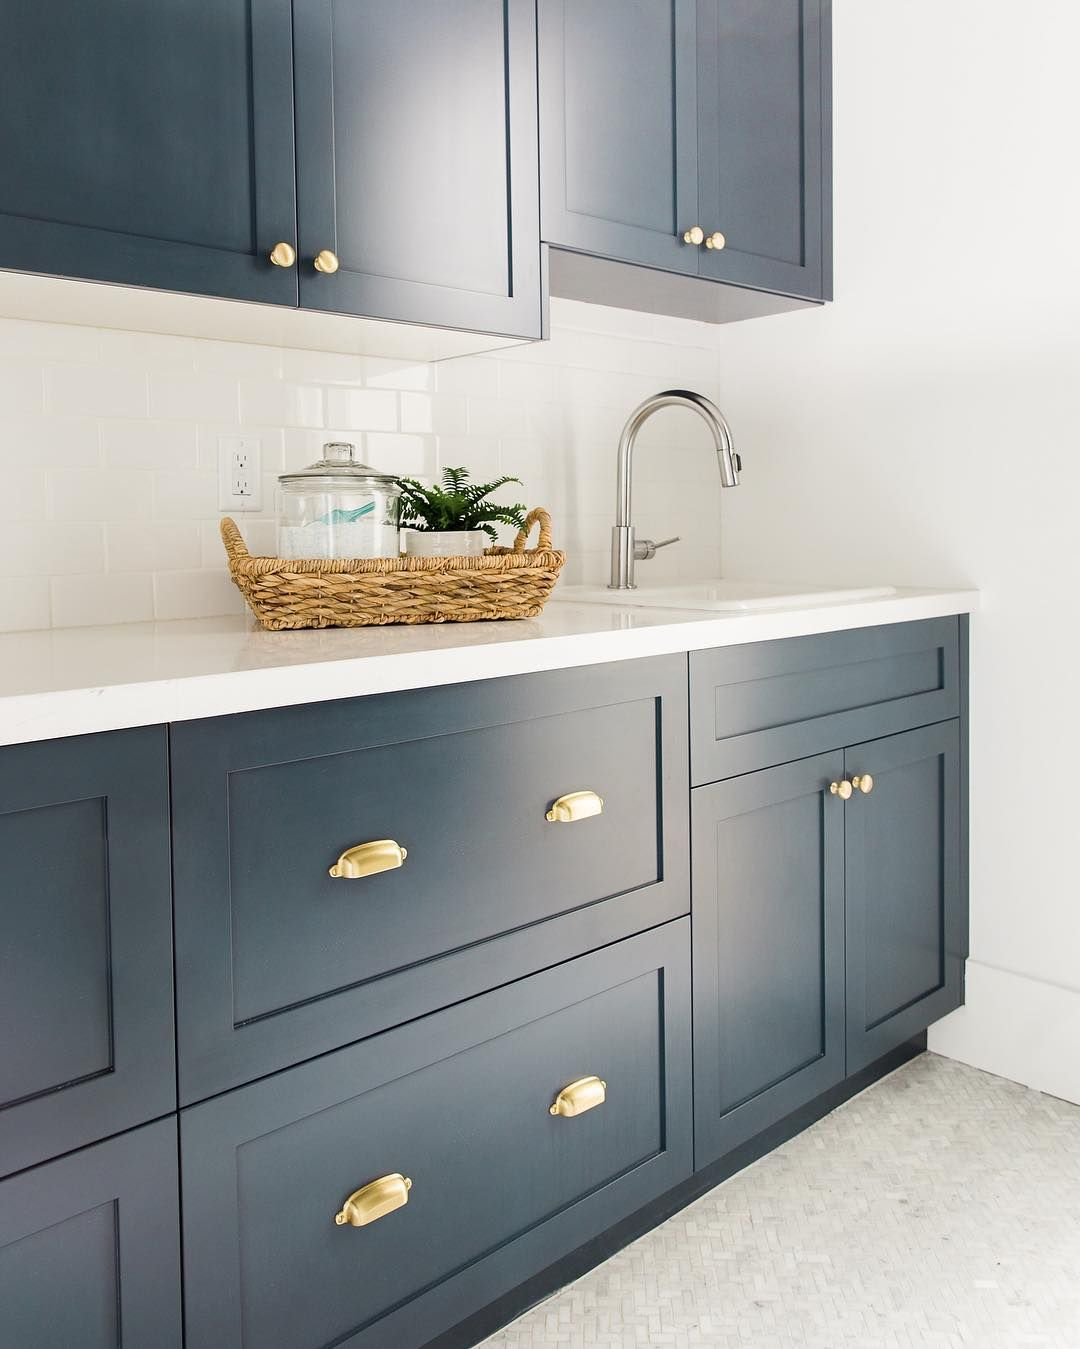 Navy Kitchen Cabinets Discount Faucets Bm Hale Pure White Caesarstone Countertops Brass